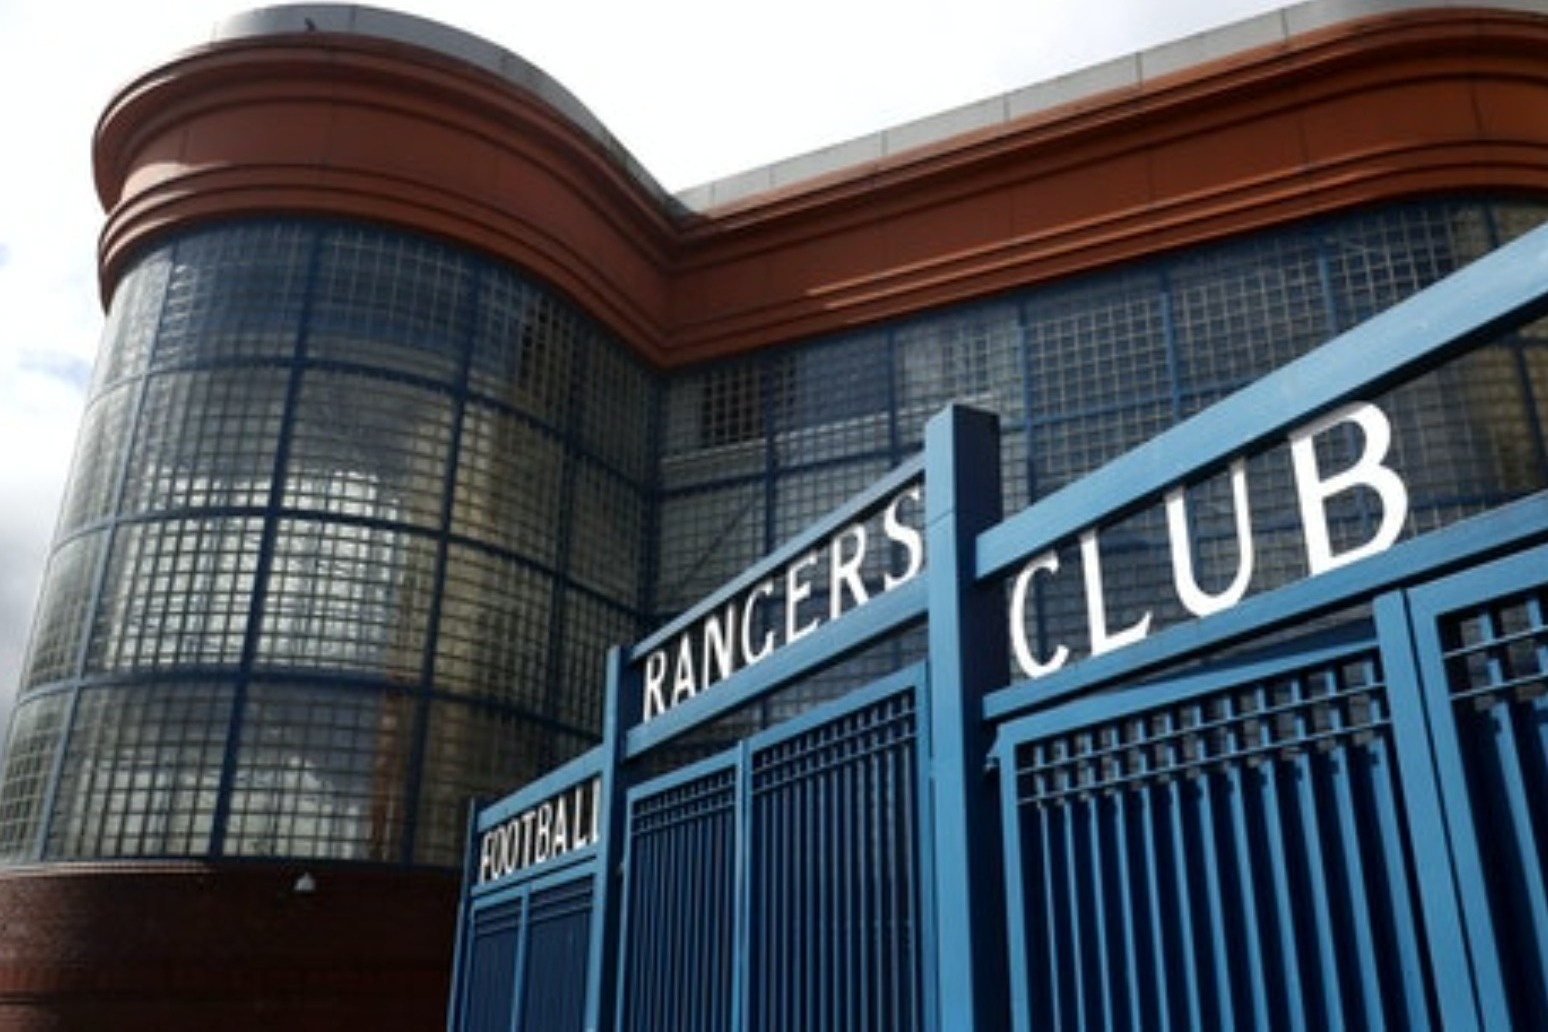 Competition watchdog to probe Rangers and retailers over replica kits thumbnail